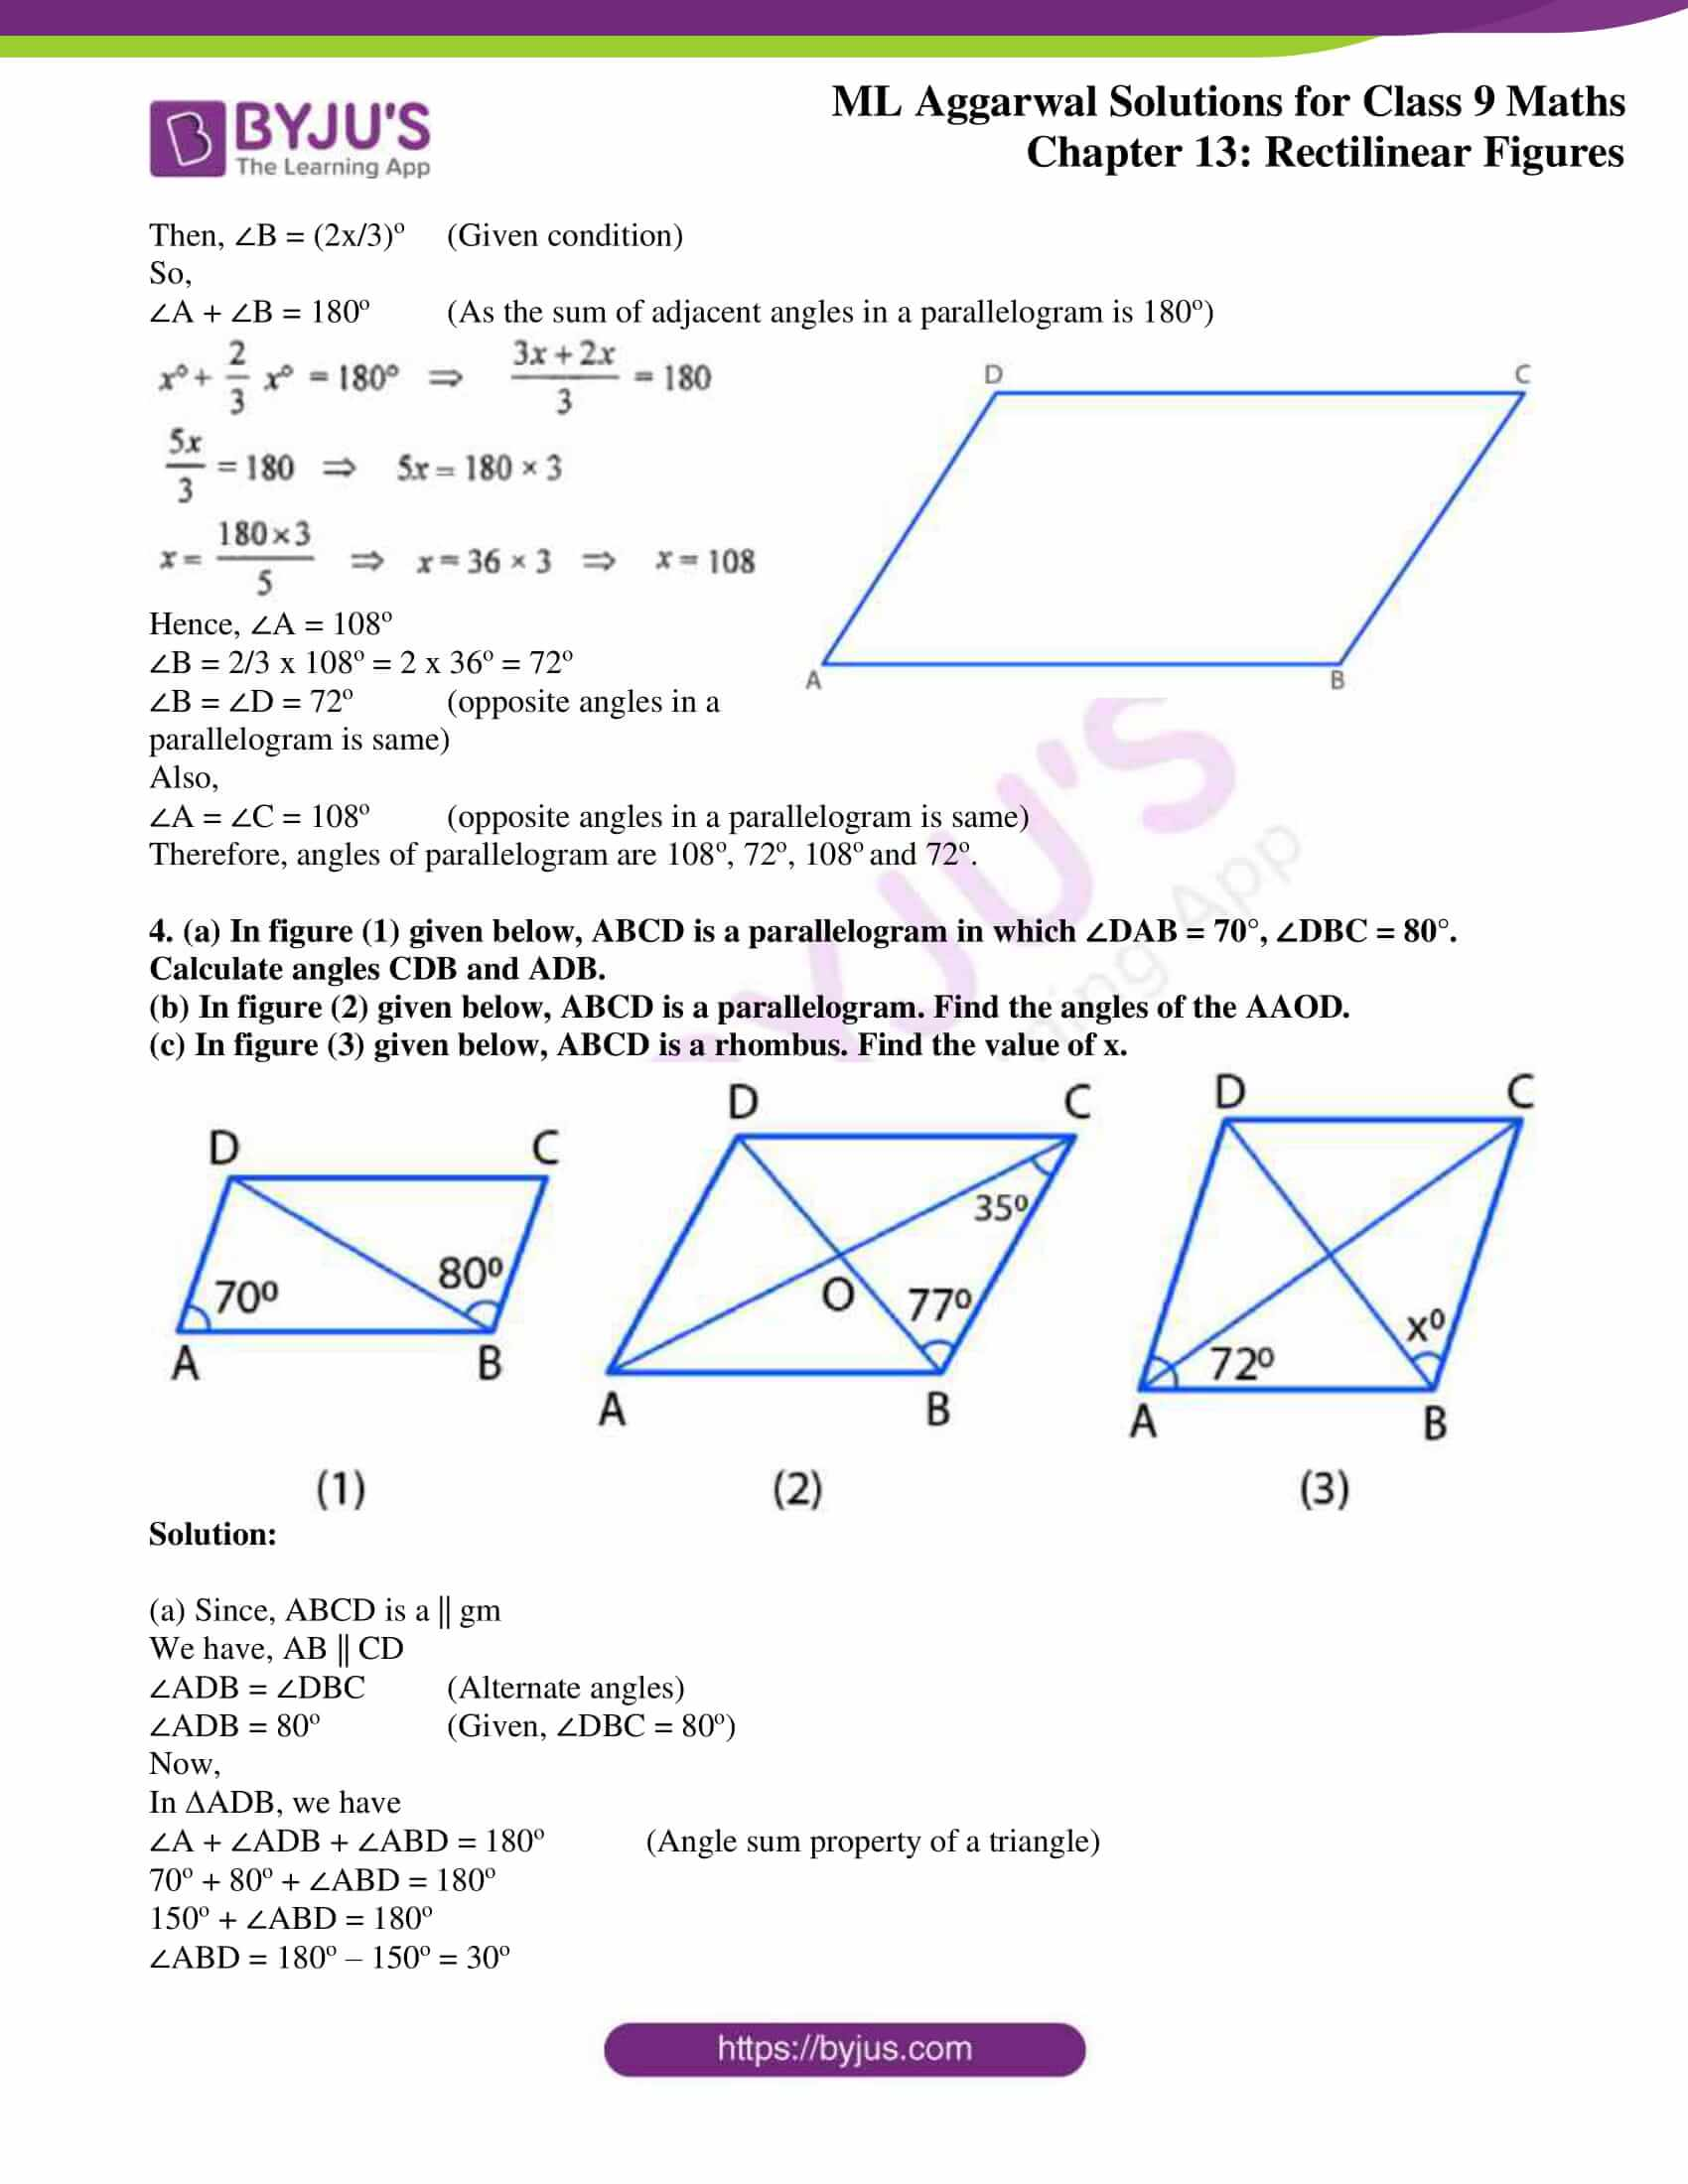 ml aggarwal solutions for class 9 maths chapter 13 02